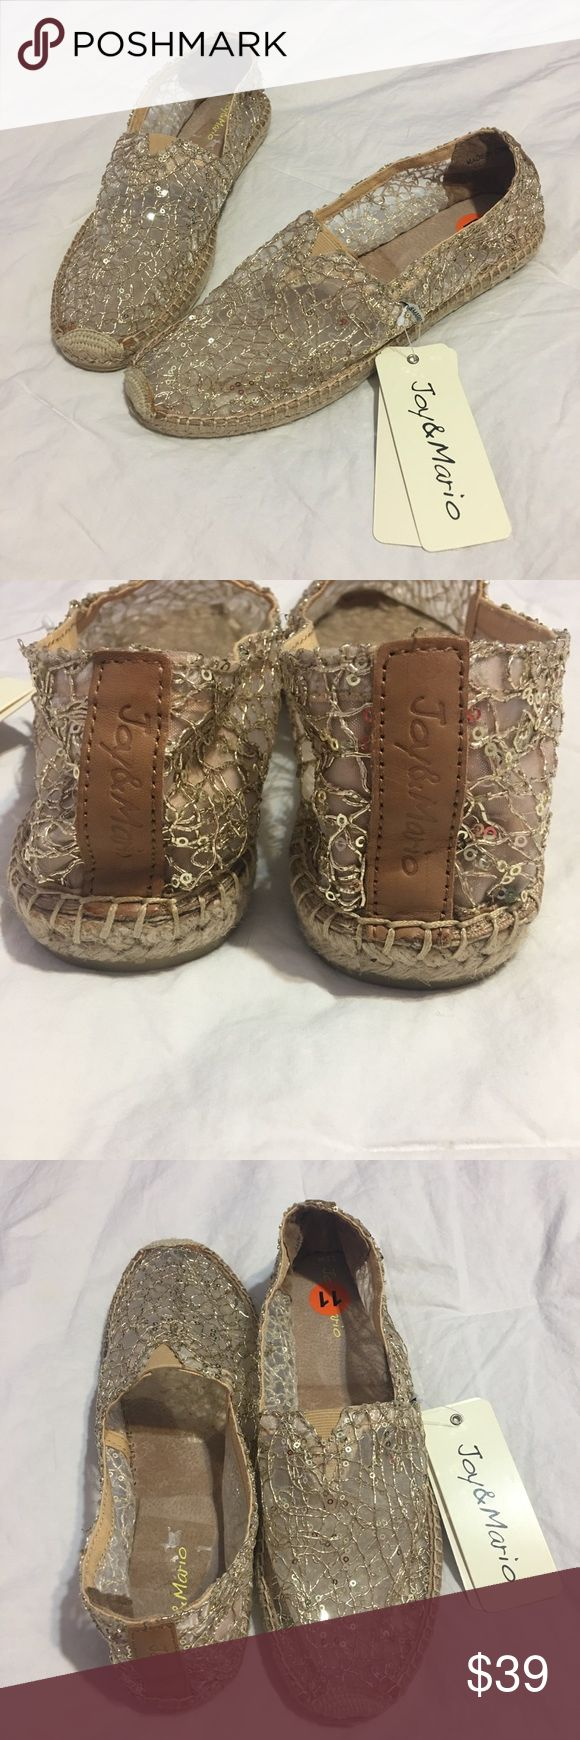 "Joy & Mario Espadrilles Super comfortable and one of a kind Joy & Mario Golden espadrilles with soft leather interior.  New with out box.  Sole measurements-11"". Joy & Mario Shoes Espadrilles"